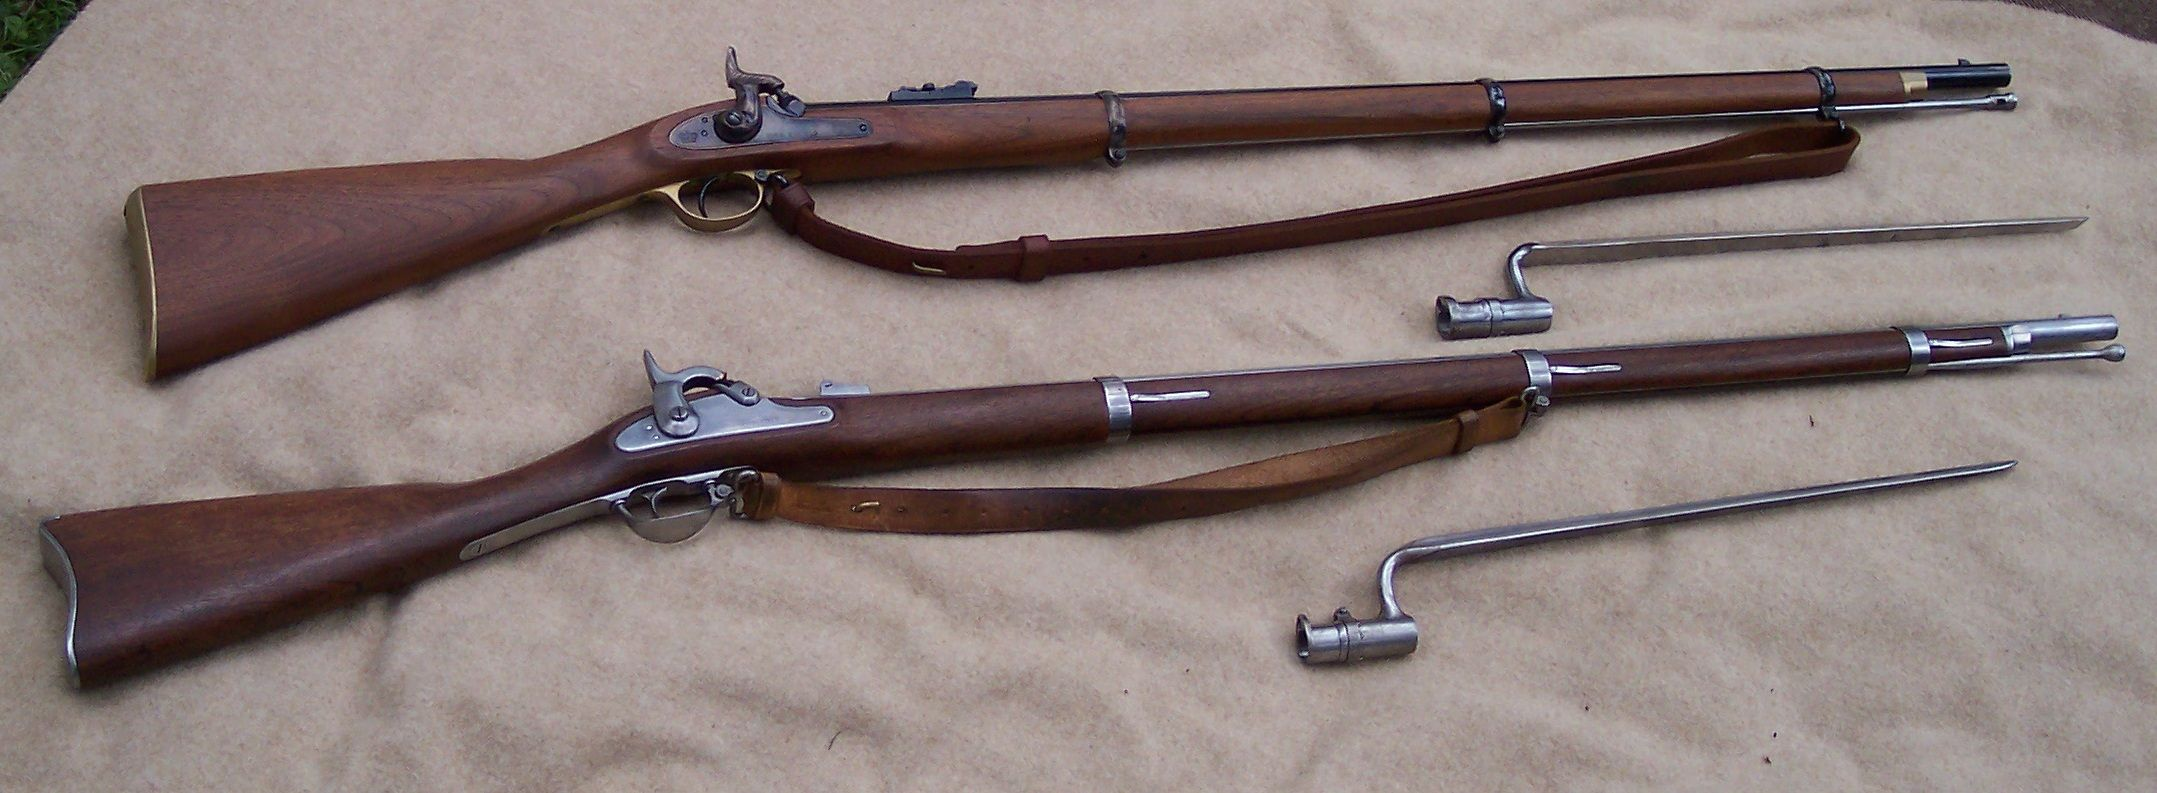 .577 Caliber Enfield Rifle Musket. - 214.9KB